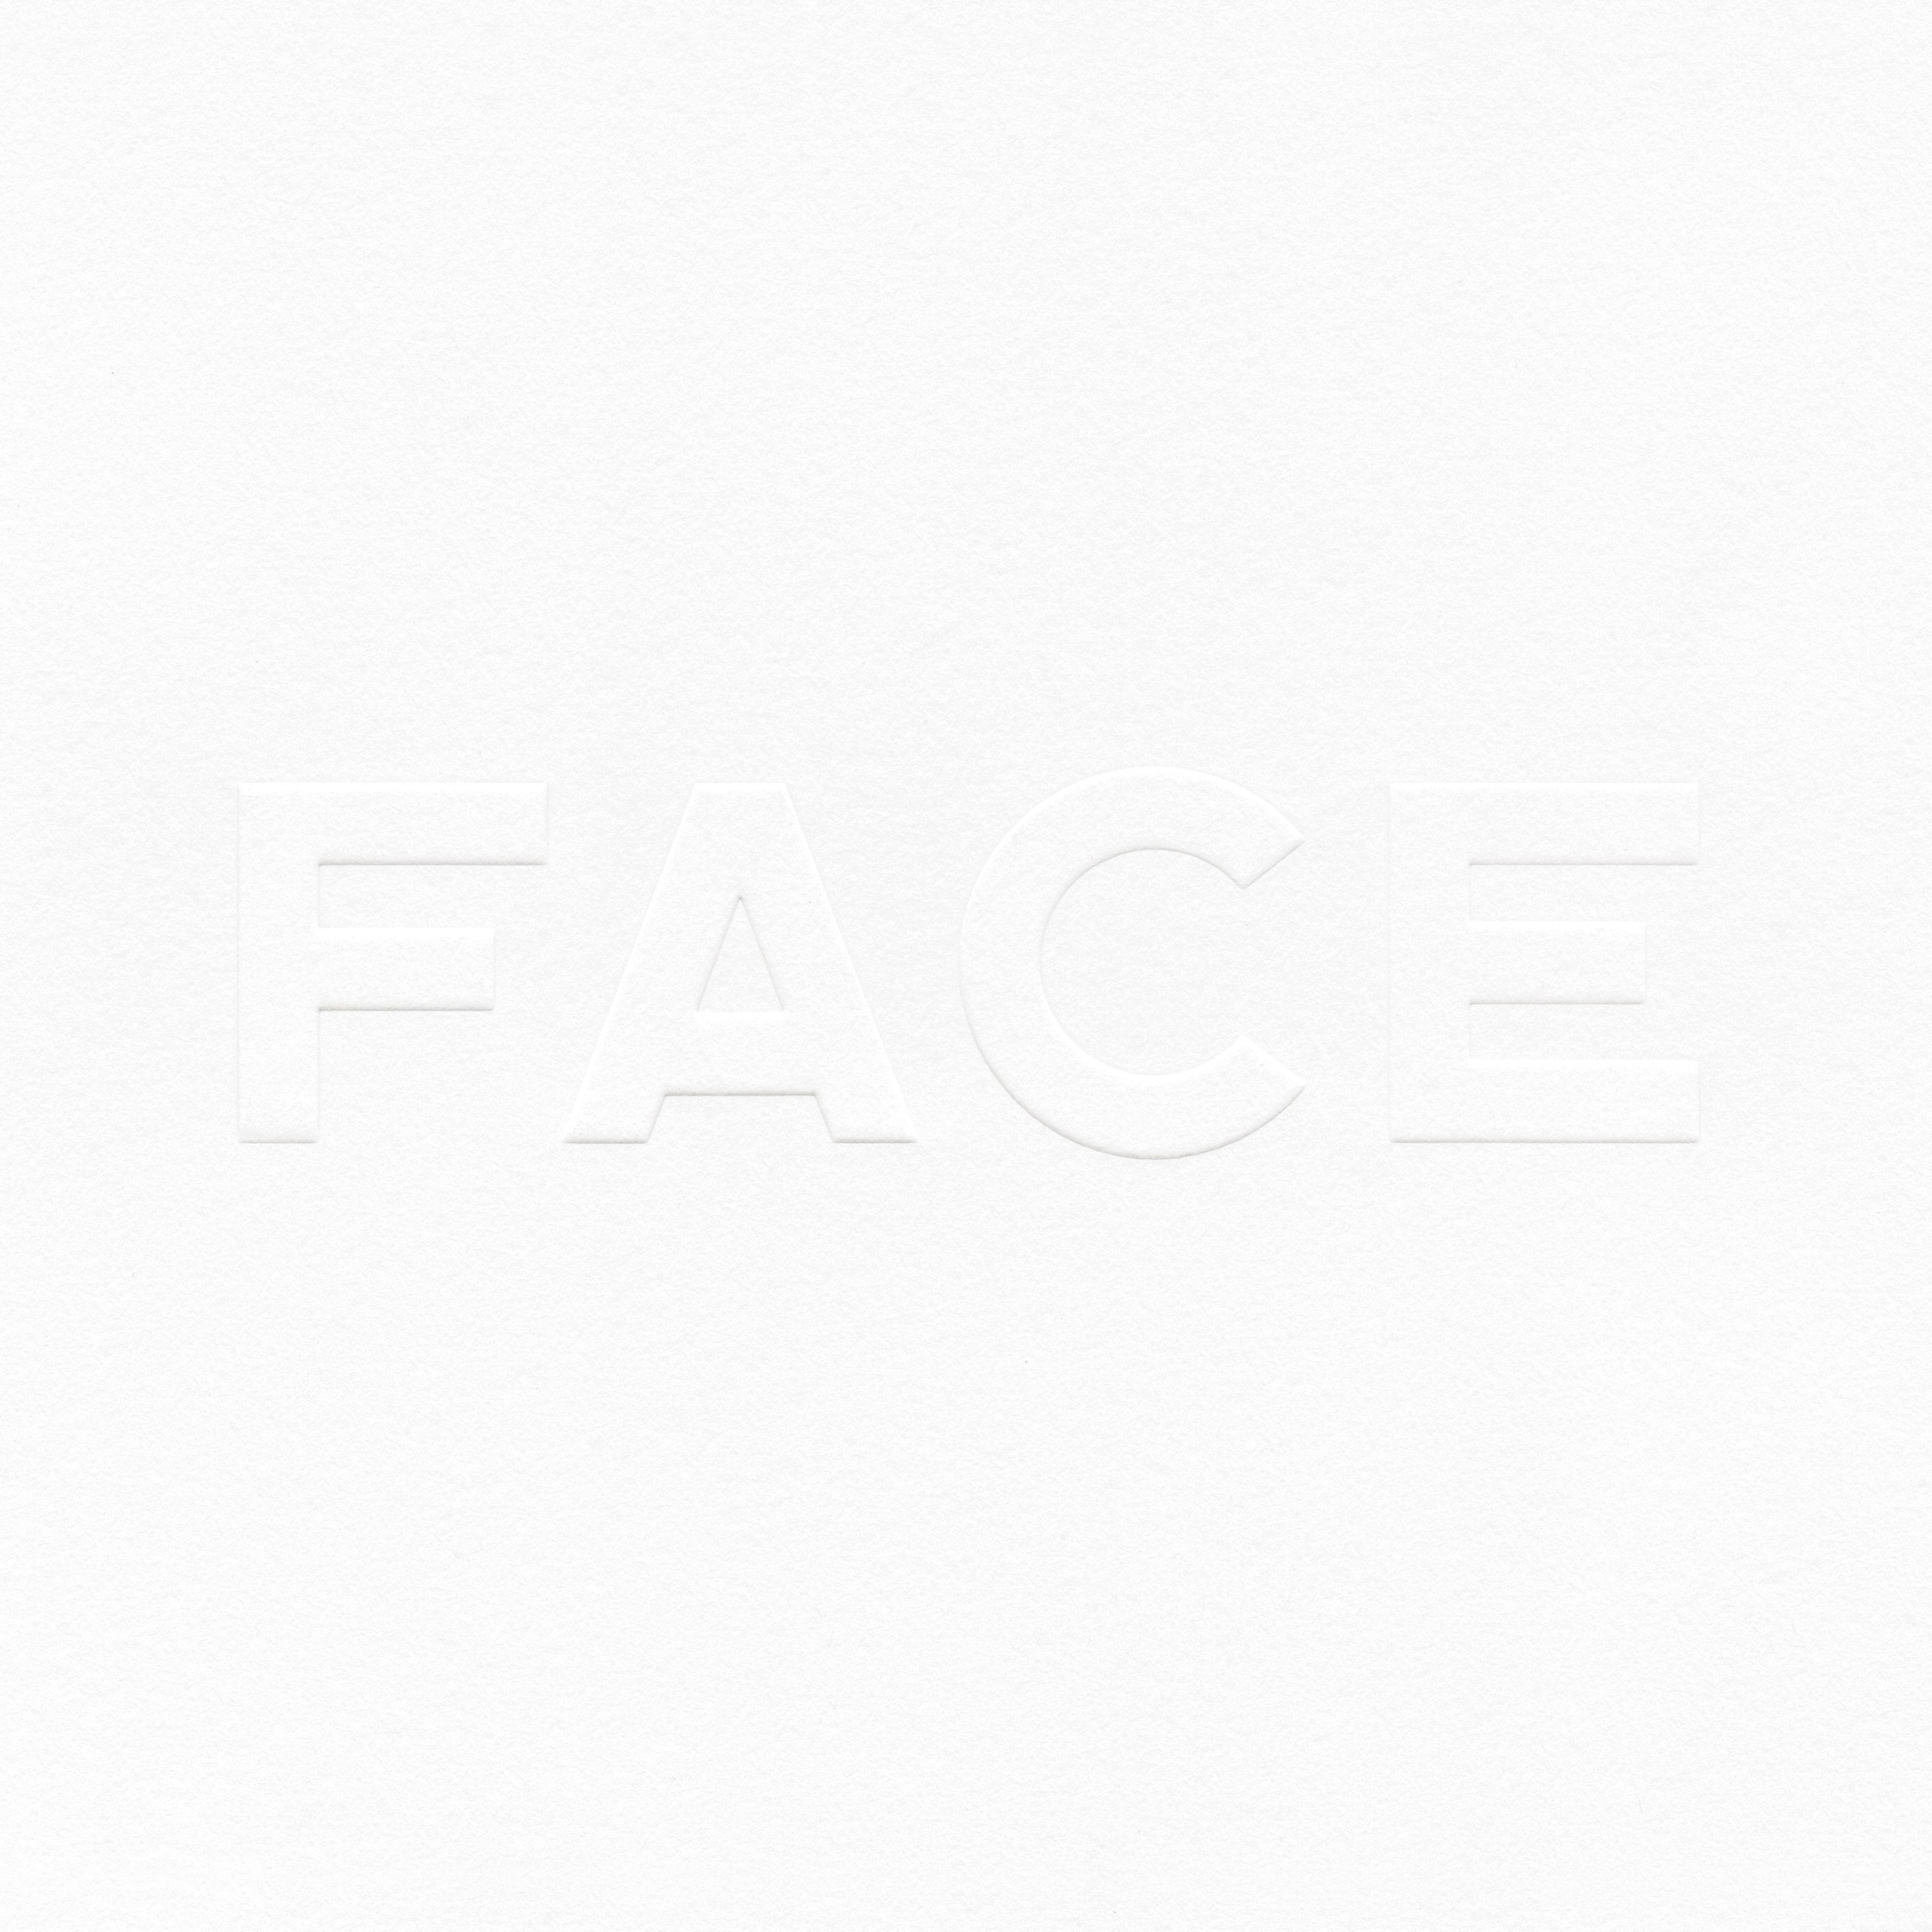 Image of FACE / 80KIDZ